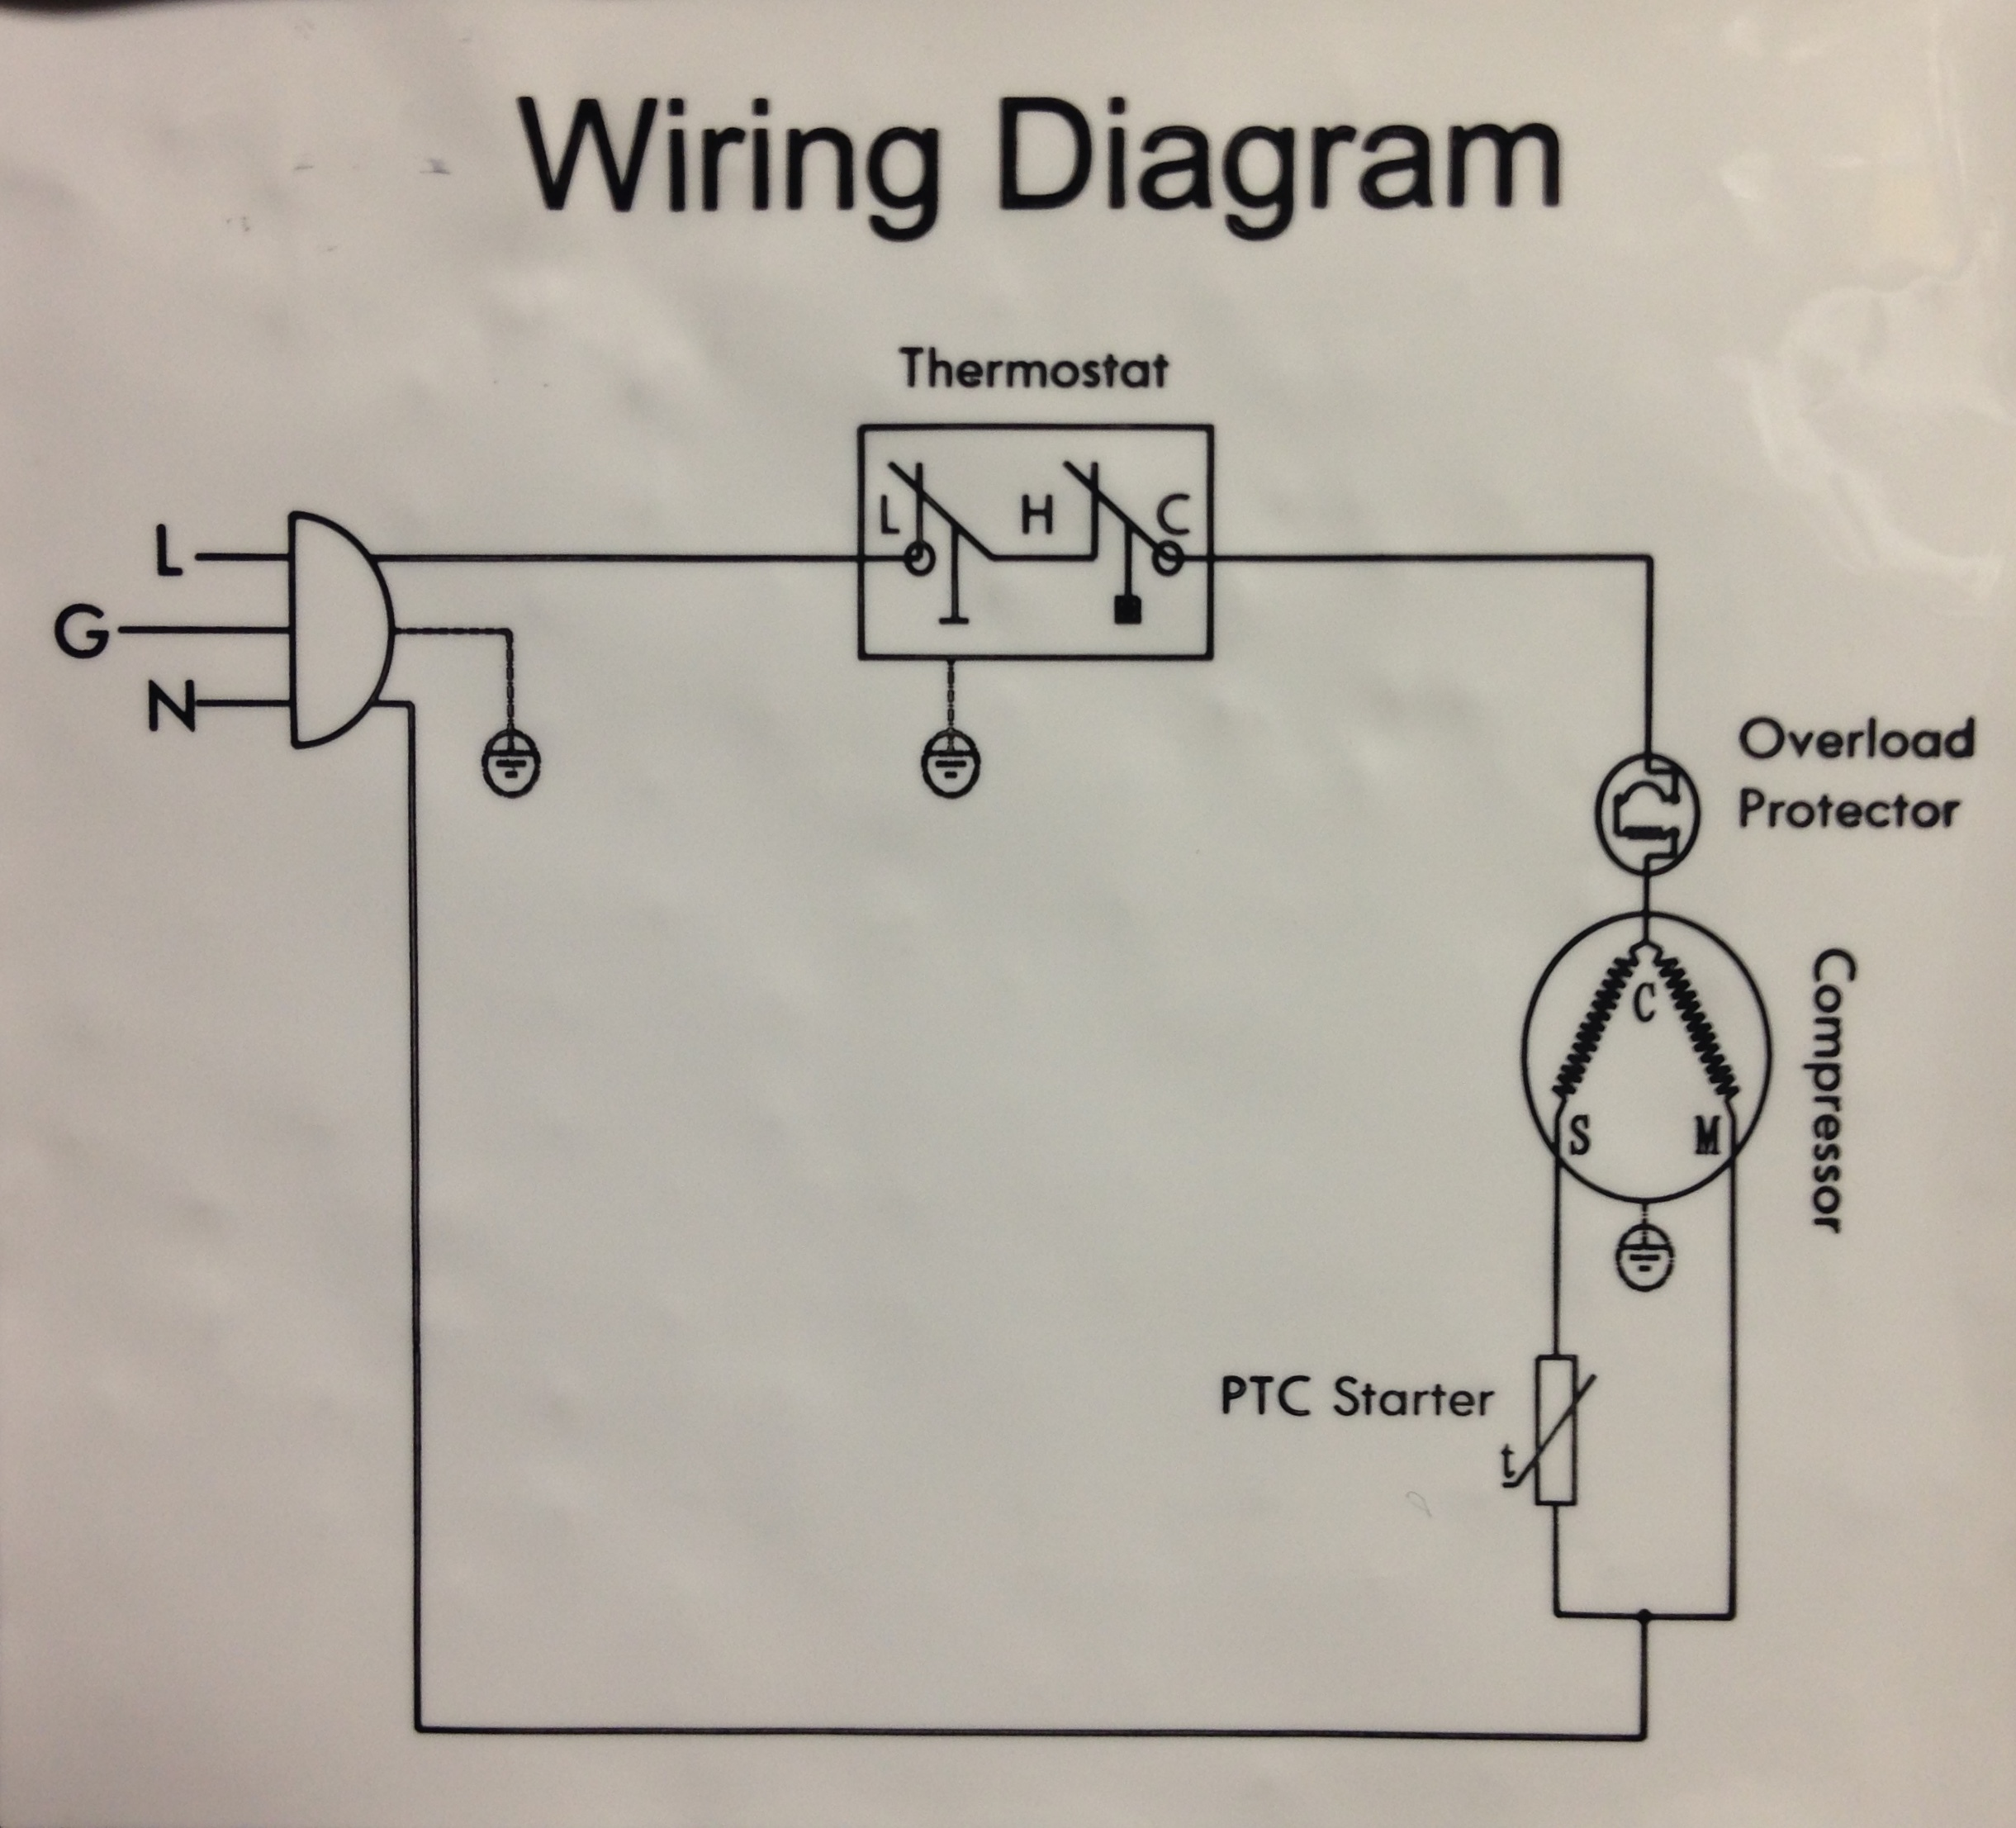 c5986337b4249150884d4e057ccb08b32fe4028e new build electronics newb diagram help fridge build brewpi refrigerator compressor wiring diagram at fashall.co